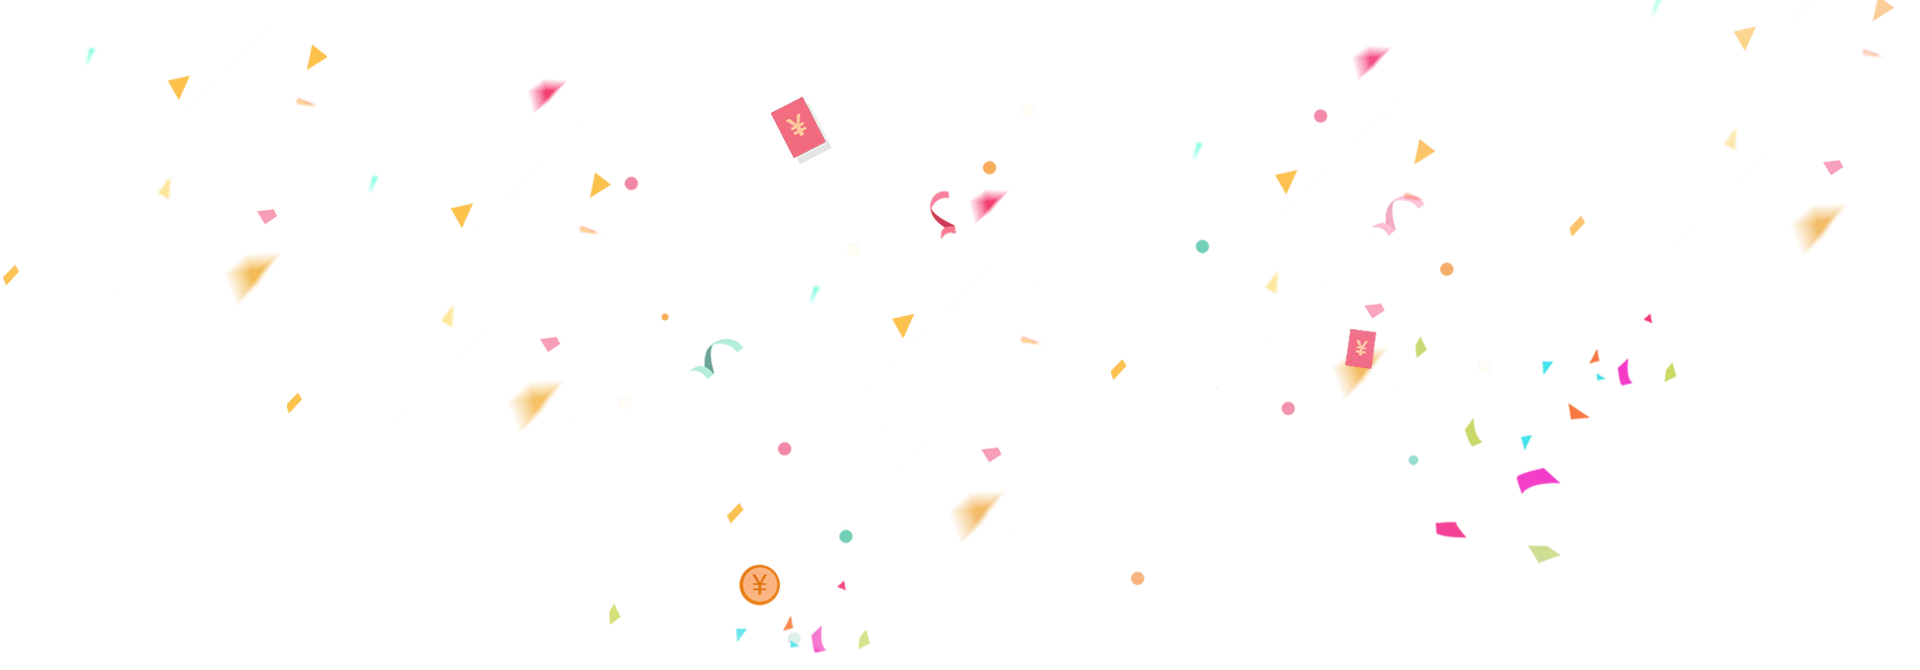 Pink confetti png. Paper graphic design pattern